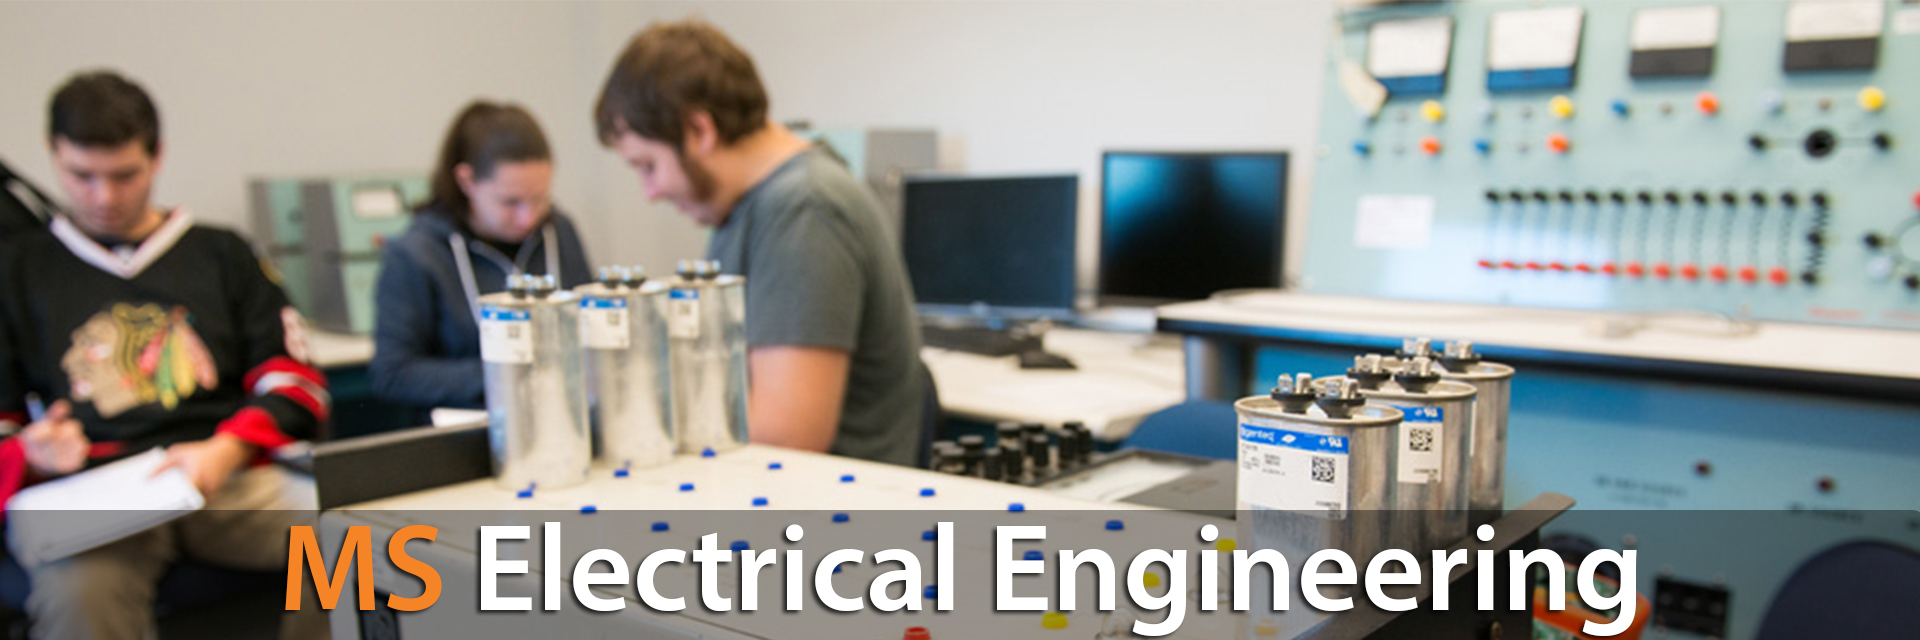 MS Electrical Engineering